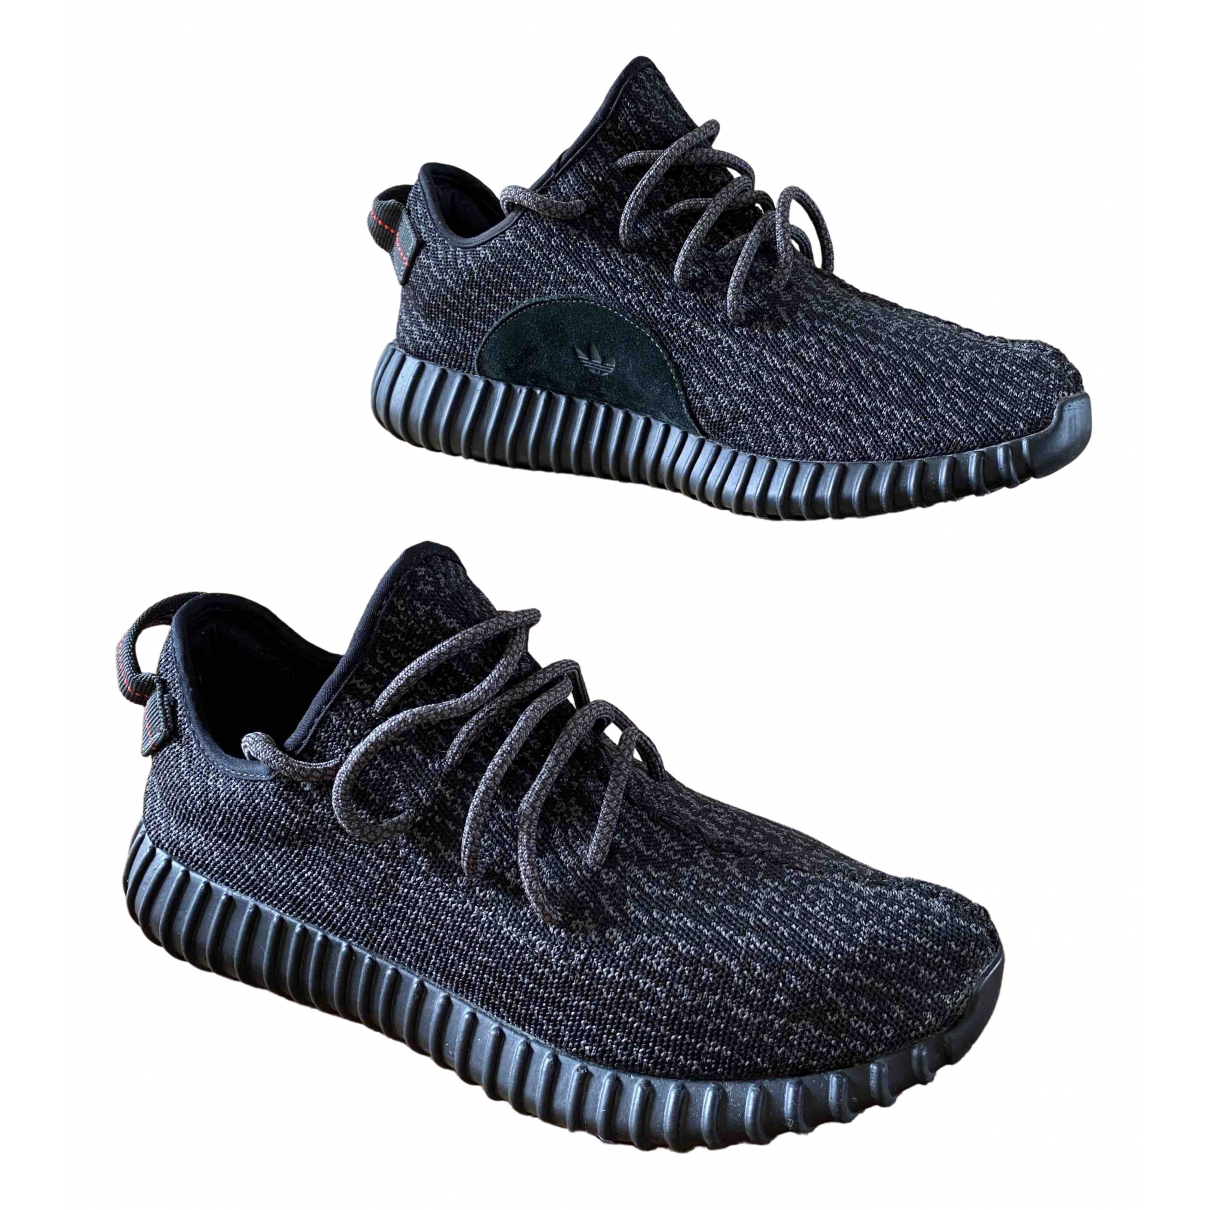 Yeezy X Adidas Boost 350 V1 Black Cloth Trainers for Men 10.5 UK